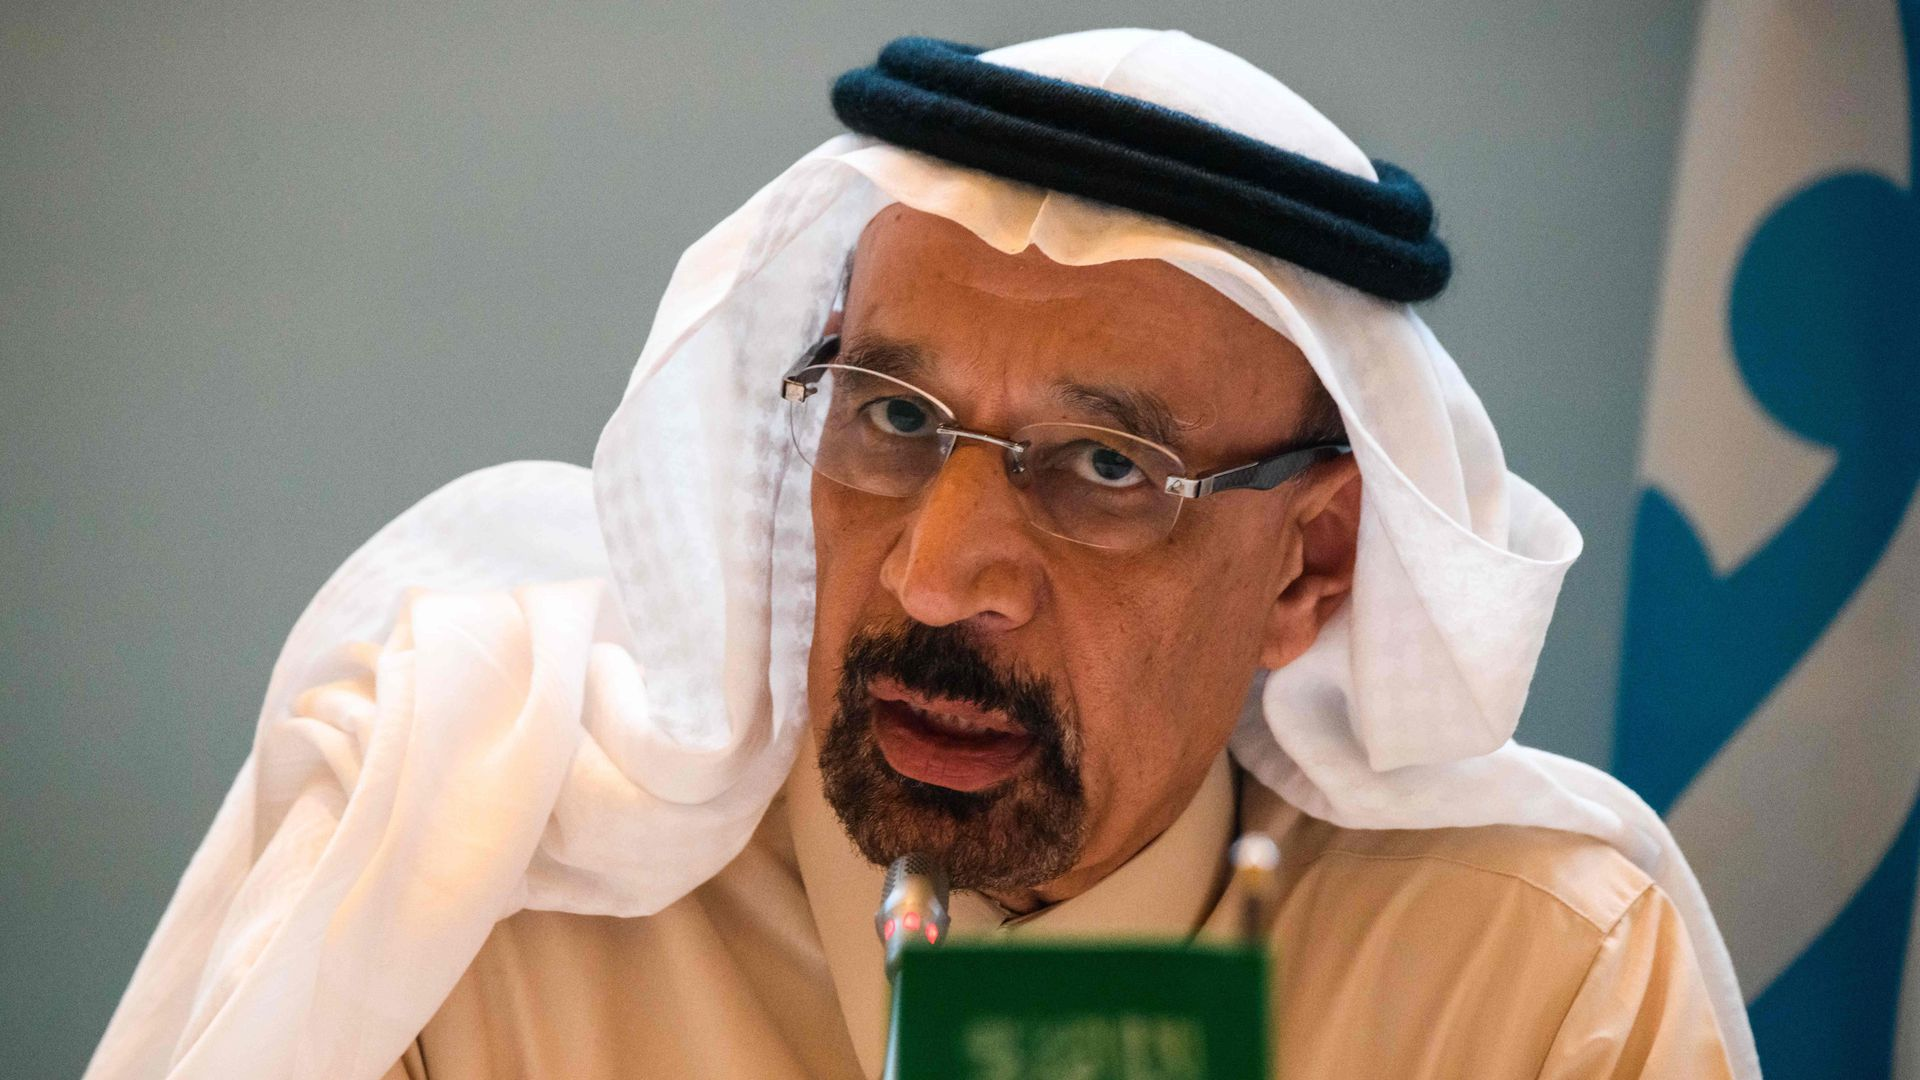 This image is a close-up of Saudi Energy Minister Khalid Al Falih talking. A blurred miniature Saudi Arabian flag sits in front of him.